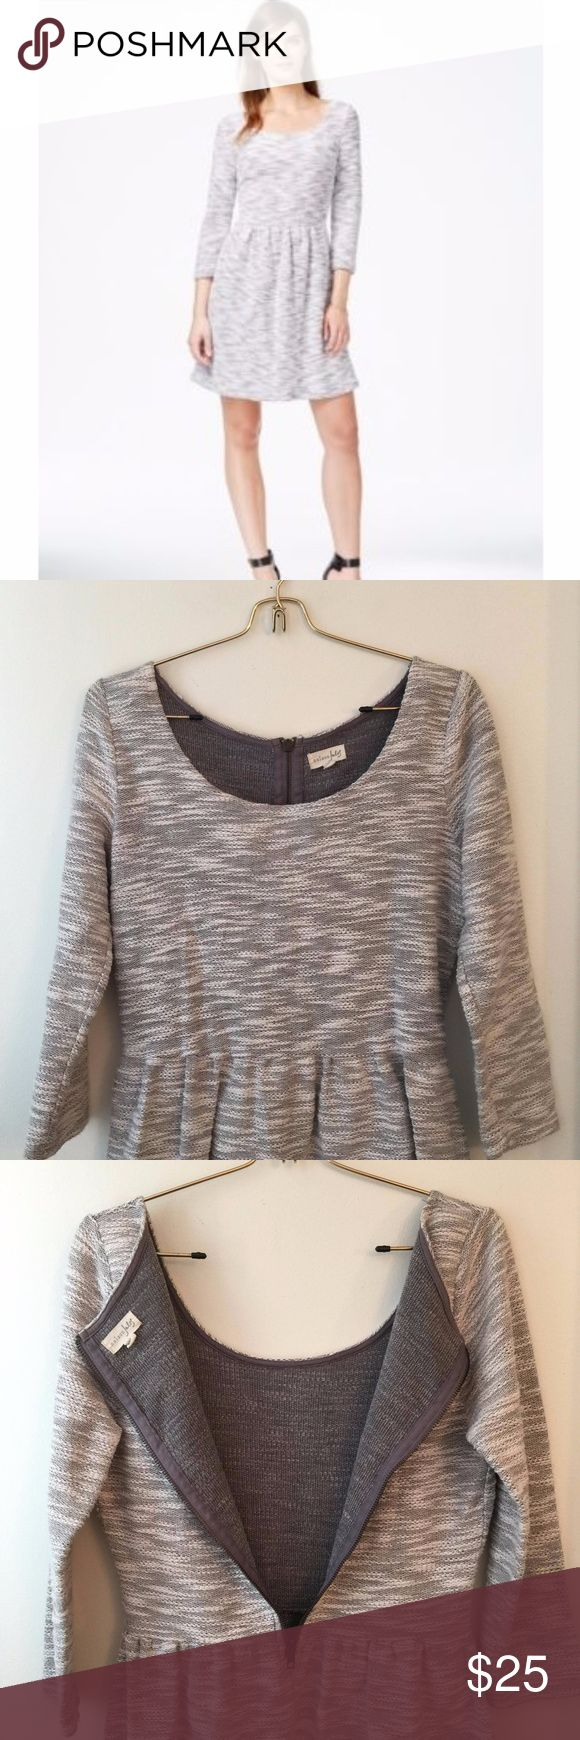 NWOT Grey Textured Sweater Dress Tagged Medium - Fits as a Medium. It's all about the details with this one, from the perfect pleating to the effortlessly comfortable and stylish fabric which has hints of copper, or rose gold, through out. Sparkles just enough in the sunlight. Maison Jules Dresses Long Sleeve